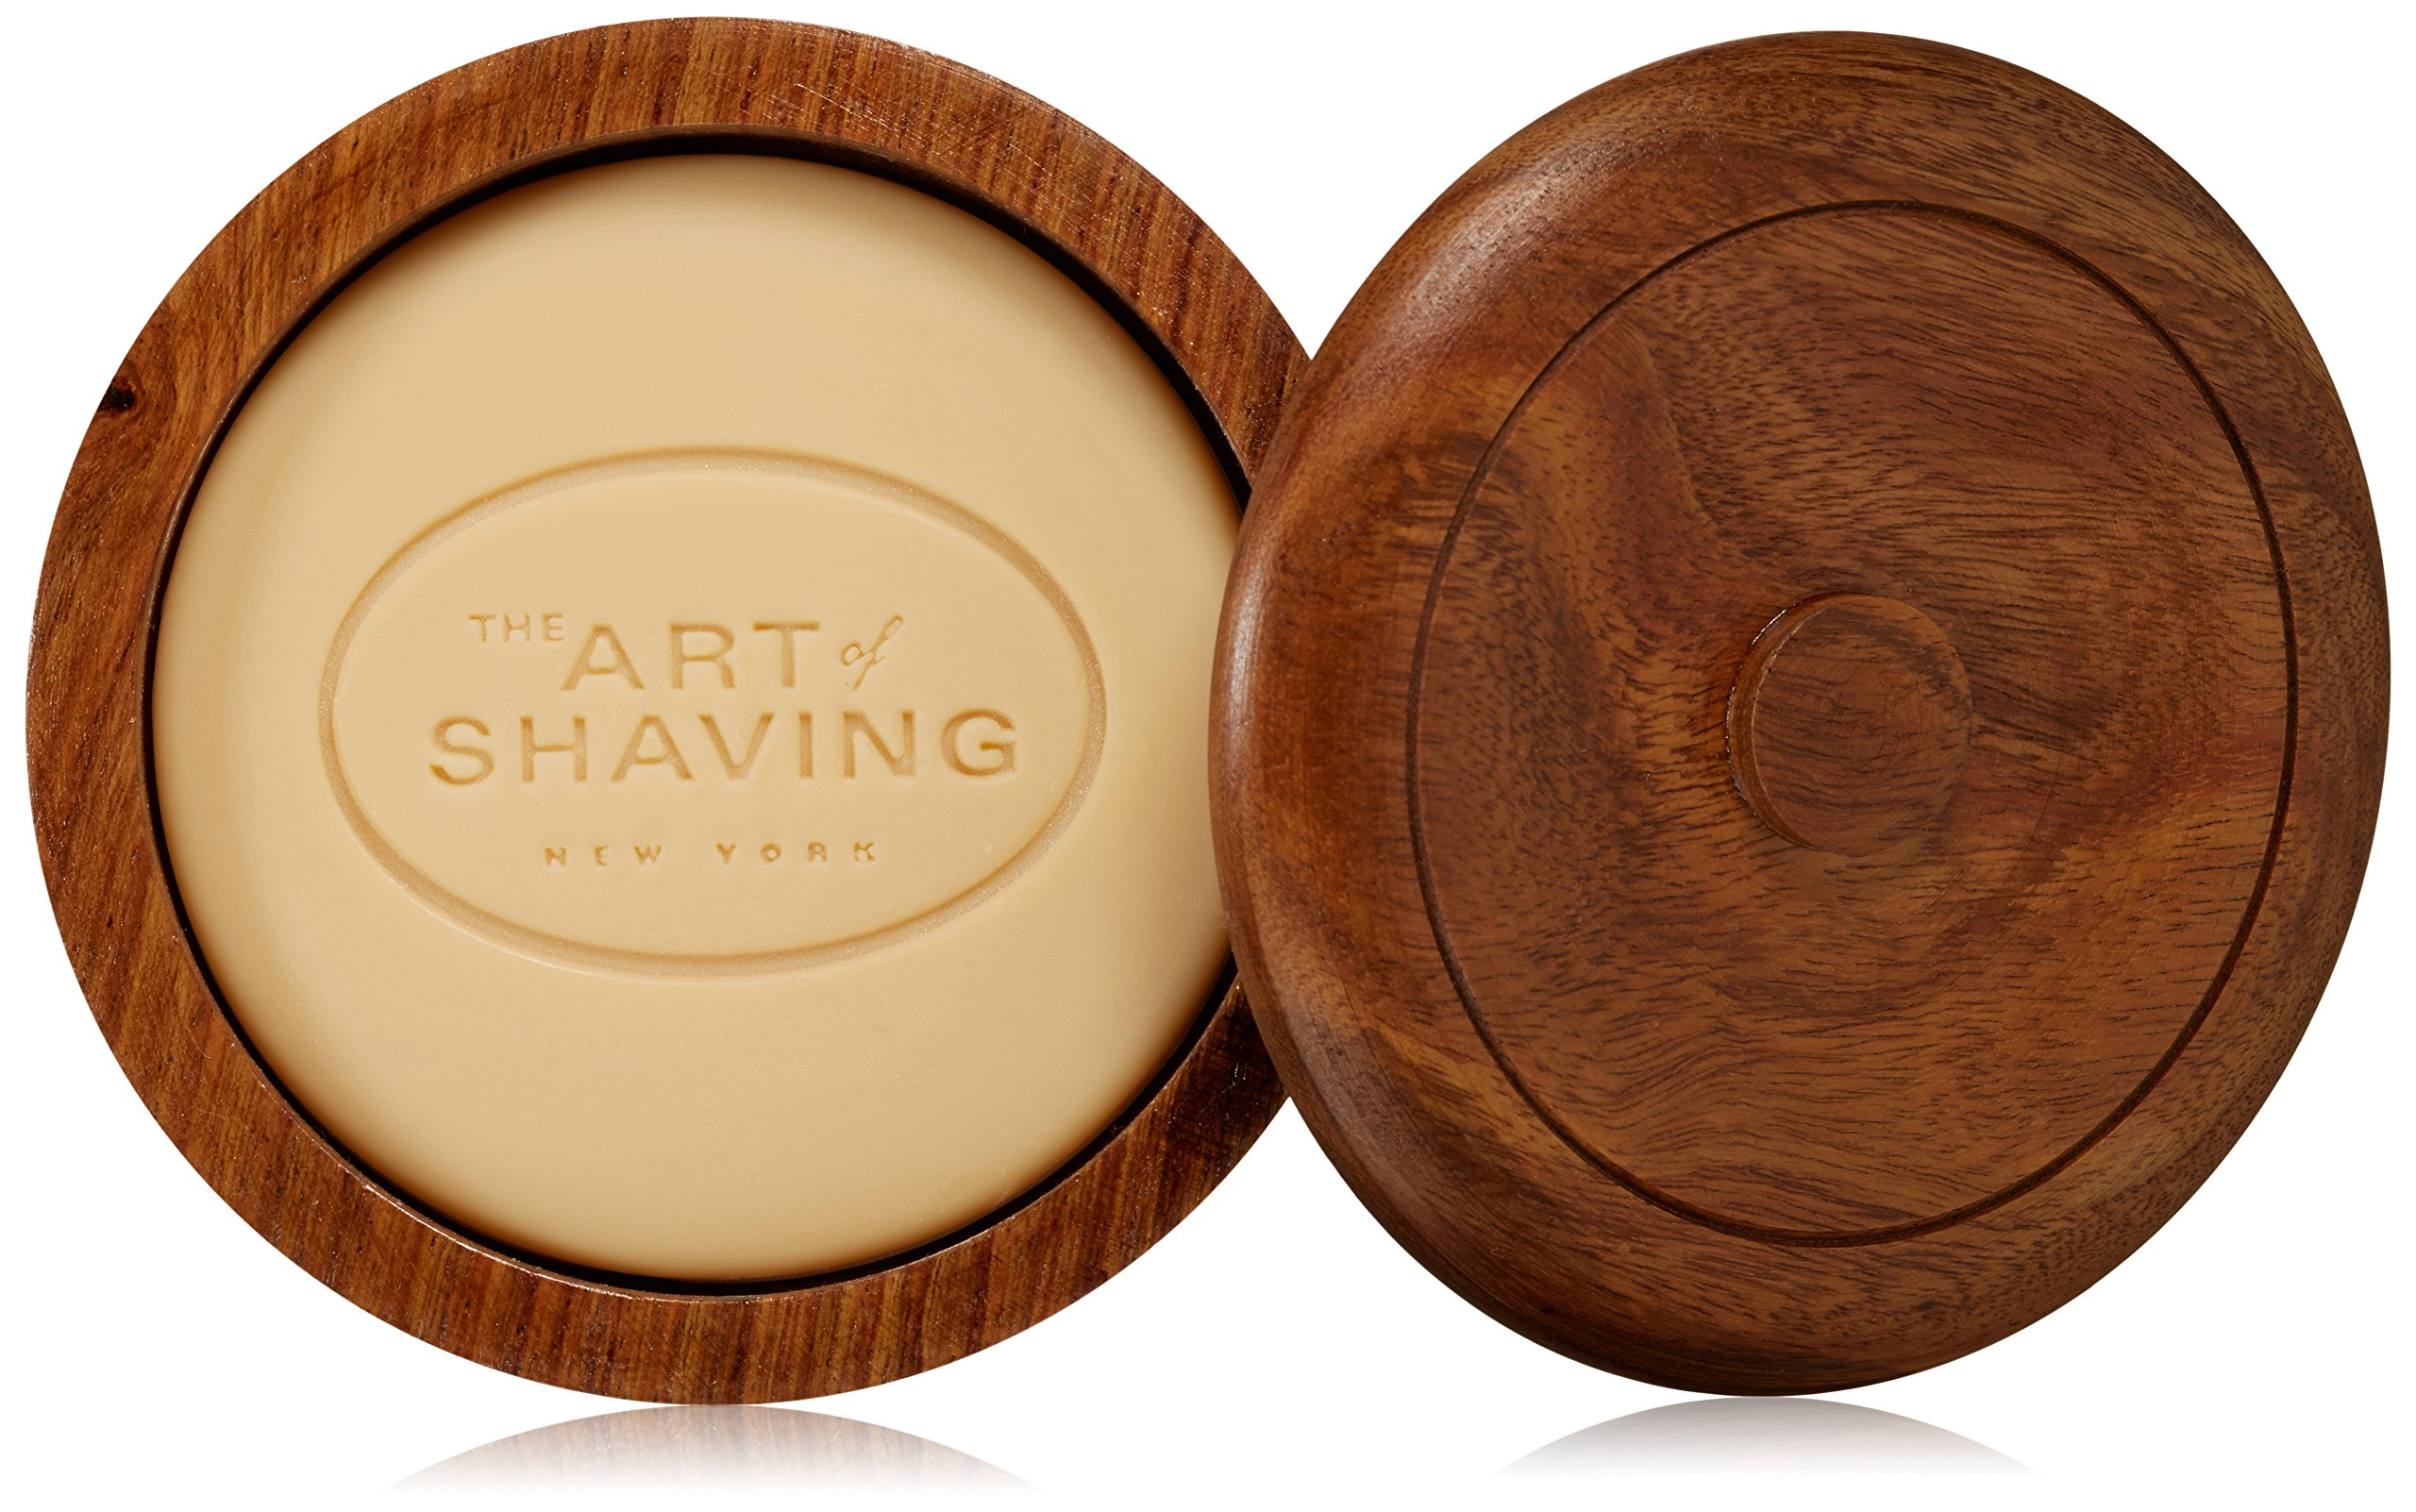 The Art of Shaving TAOS Soap with Bowl, Unscented, 3.3 oz. by The Art of Shaving